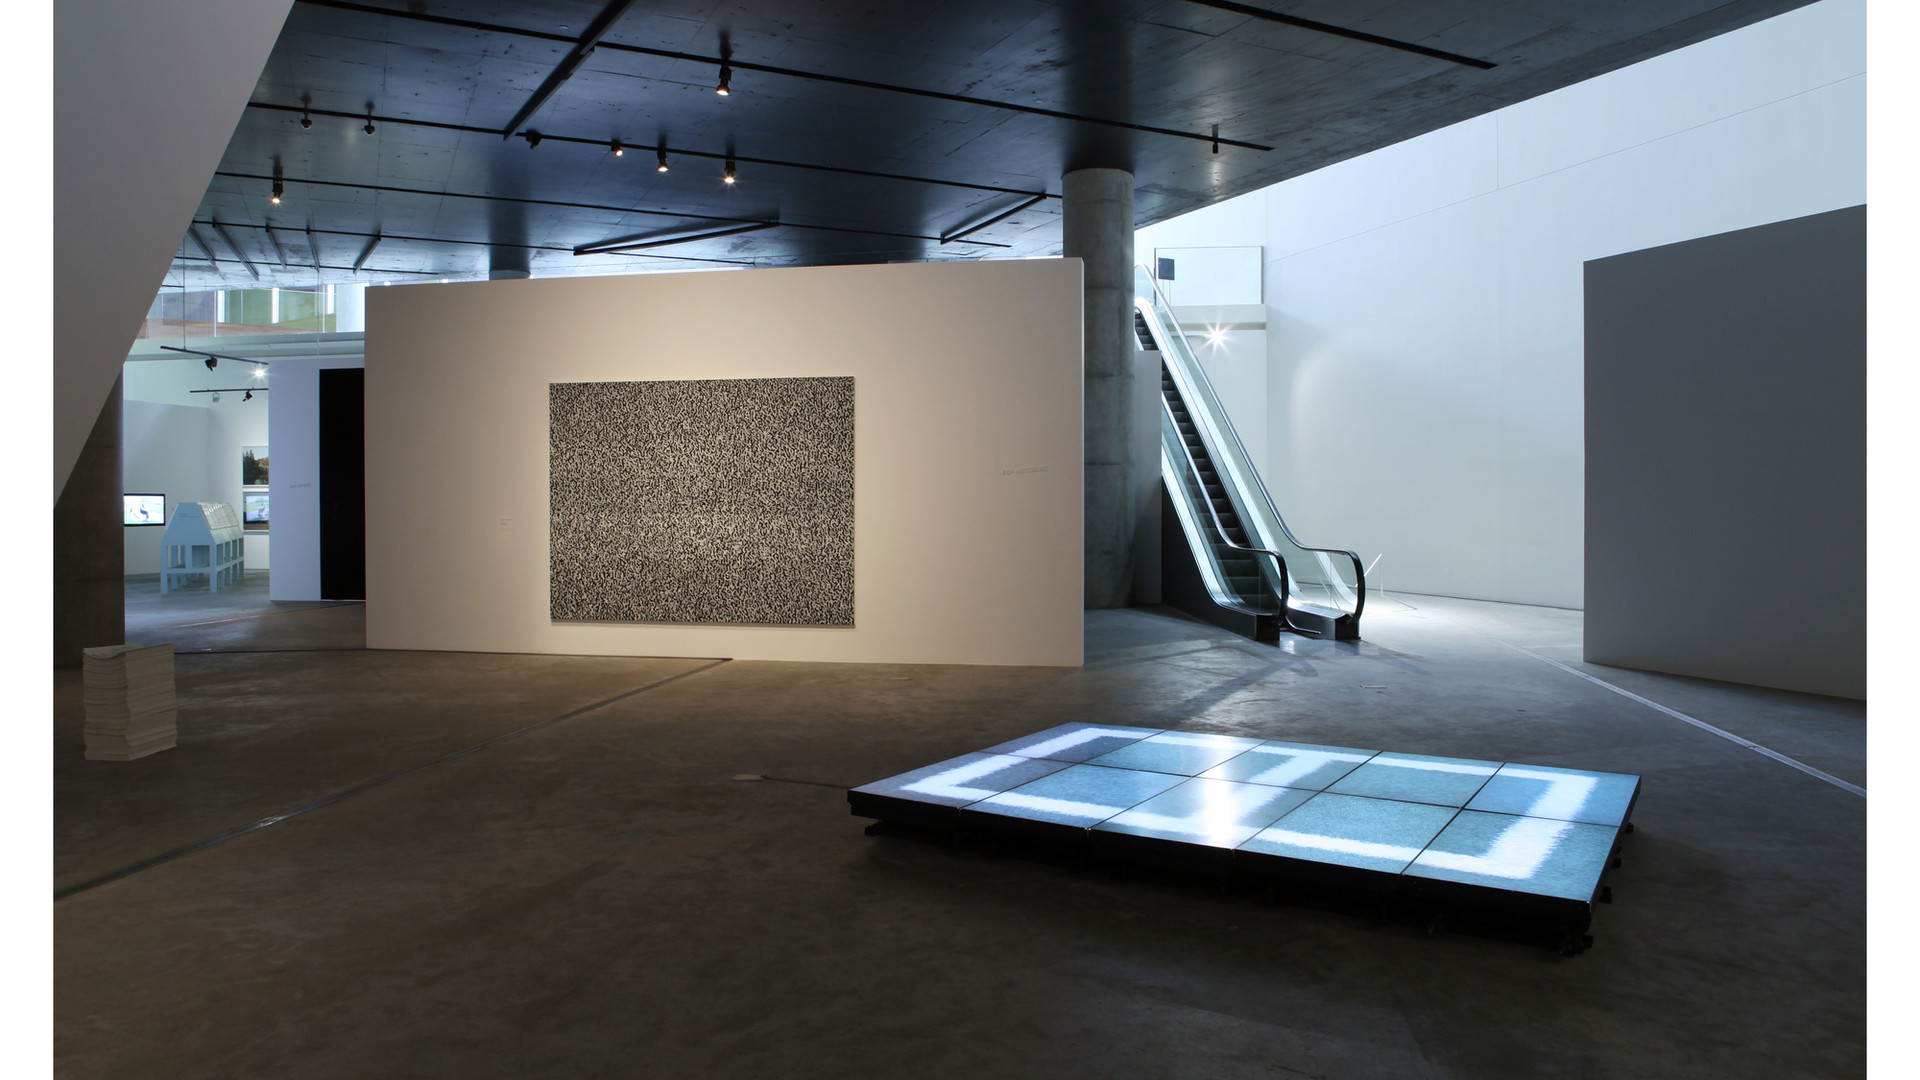 Installation view of Art Spectrum 2012, Leeum, Samsung Museum of Art, 2012